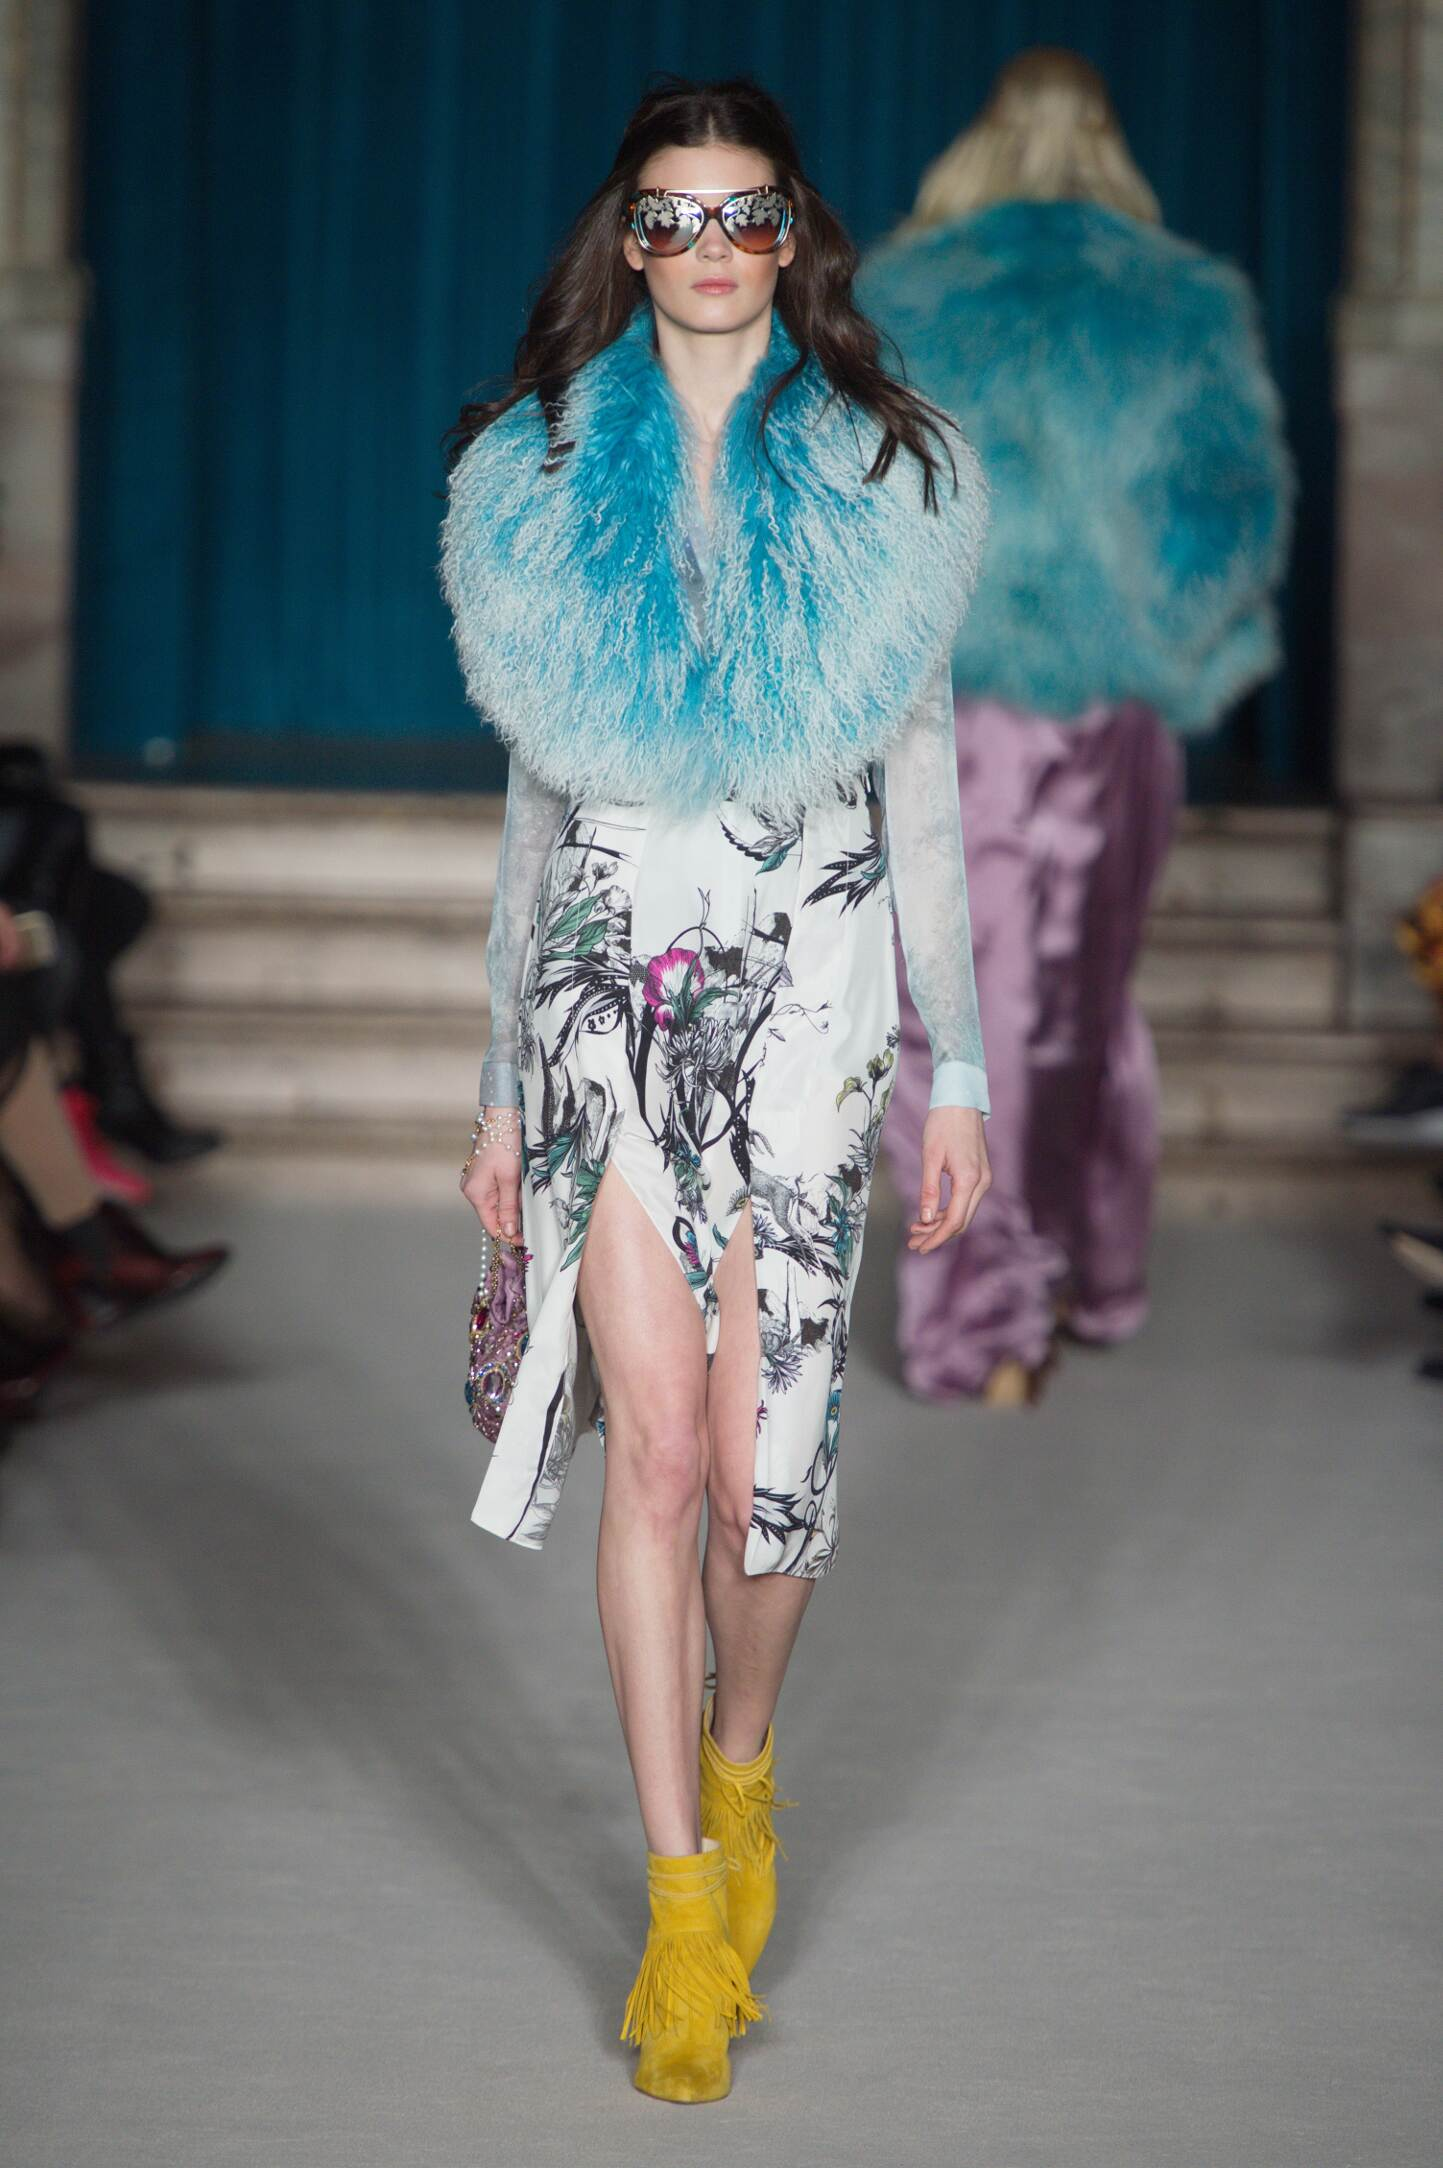 Catwalk Matthew Williamson Womenswear Collection Winter 2015